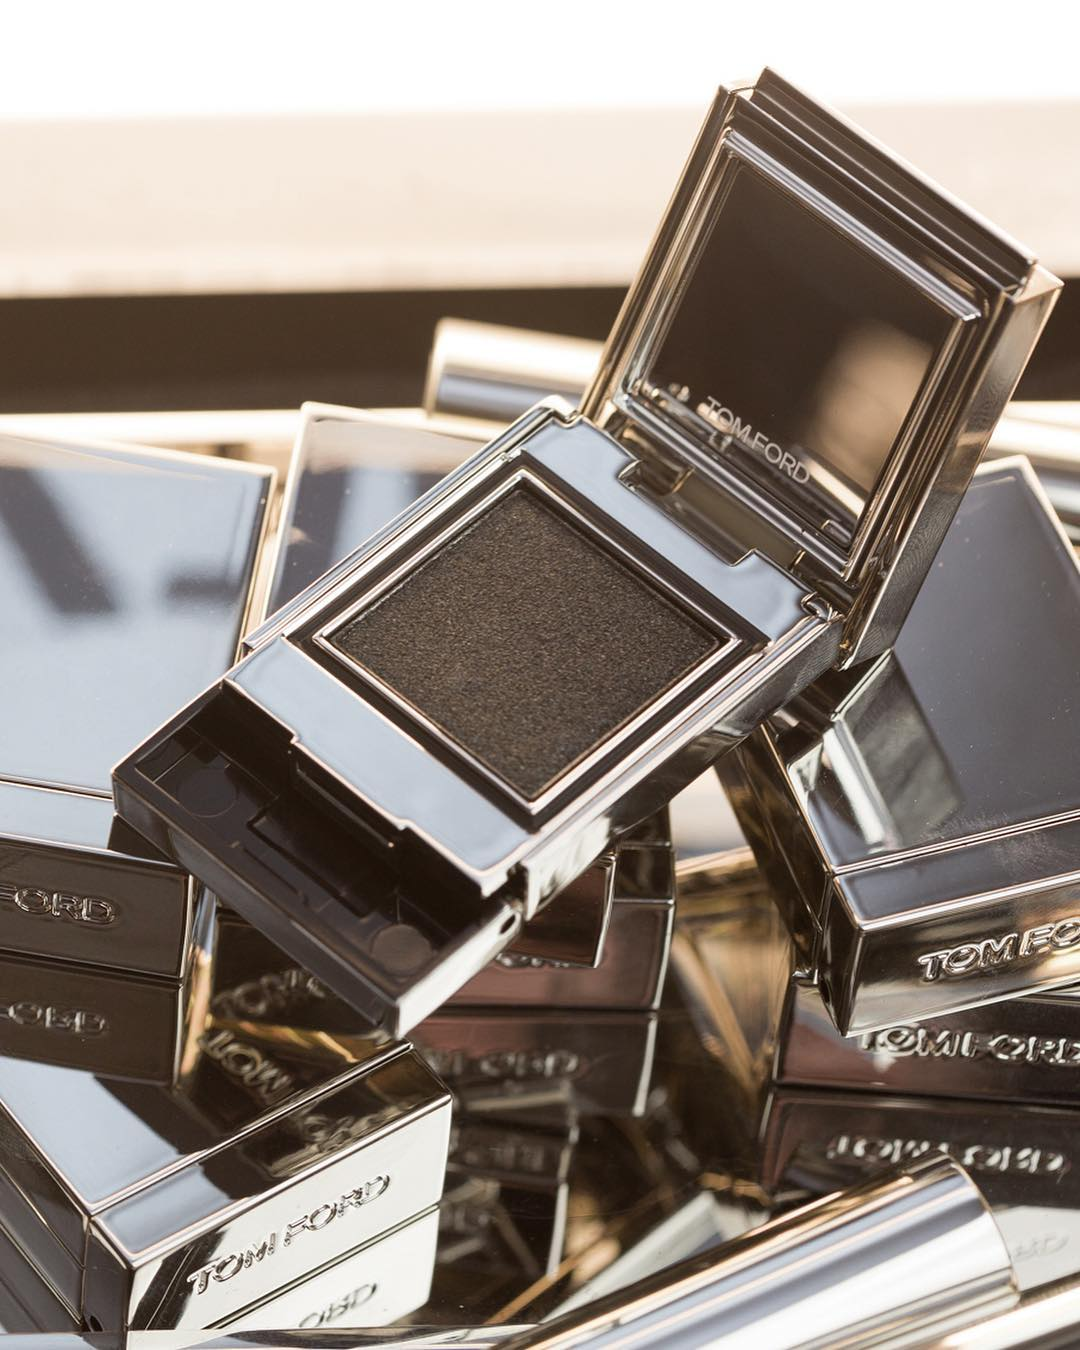 tom ford to launch extr me collection news beautyalmanac. Black Bedroom Furniture Sets. Home Design Ideas